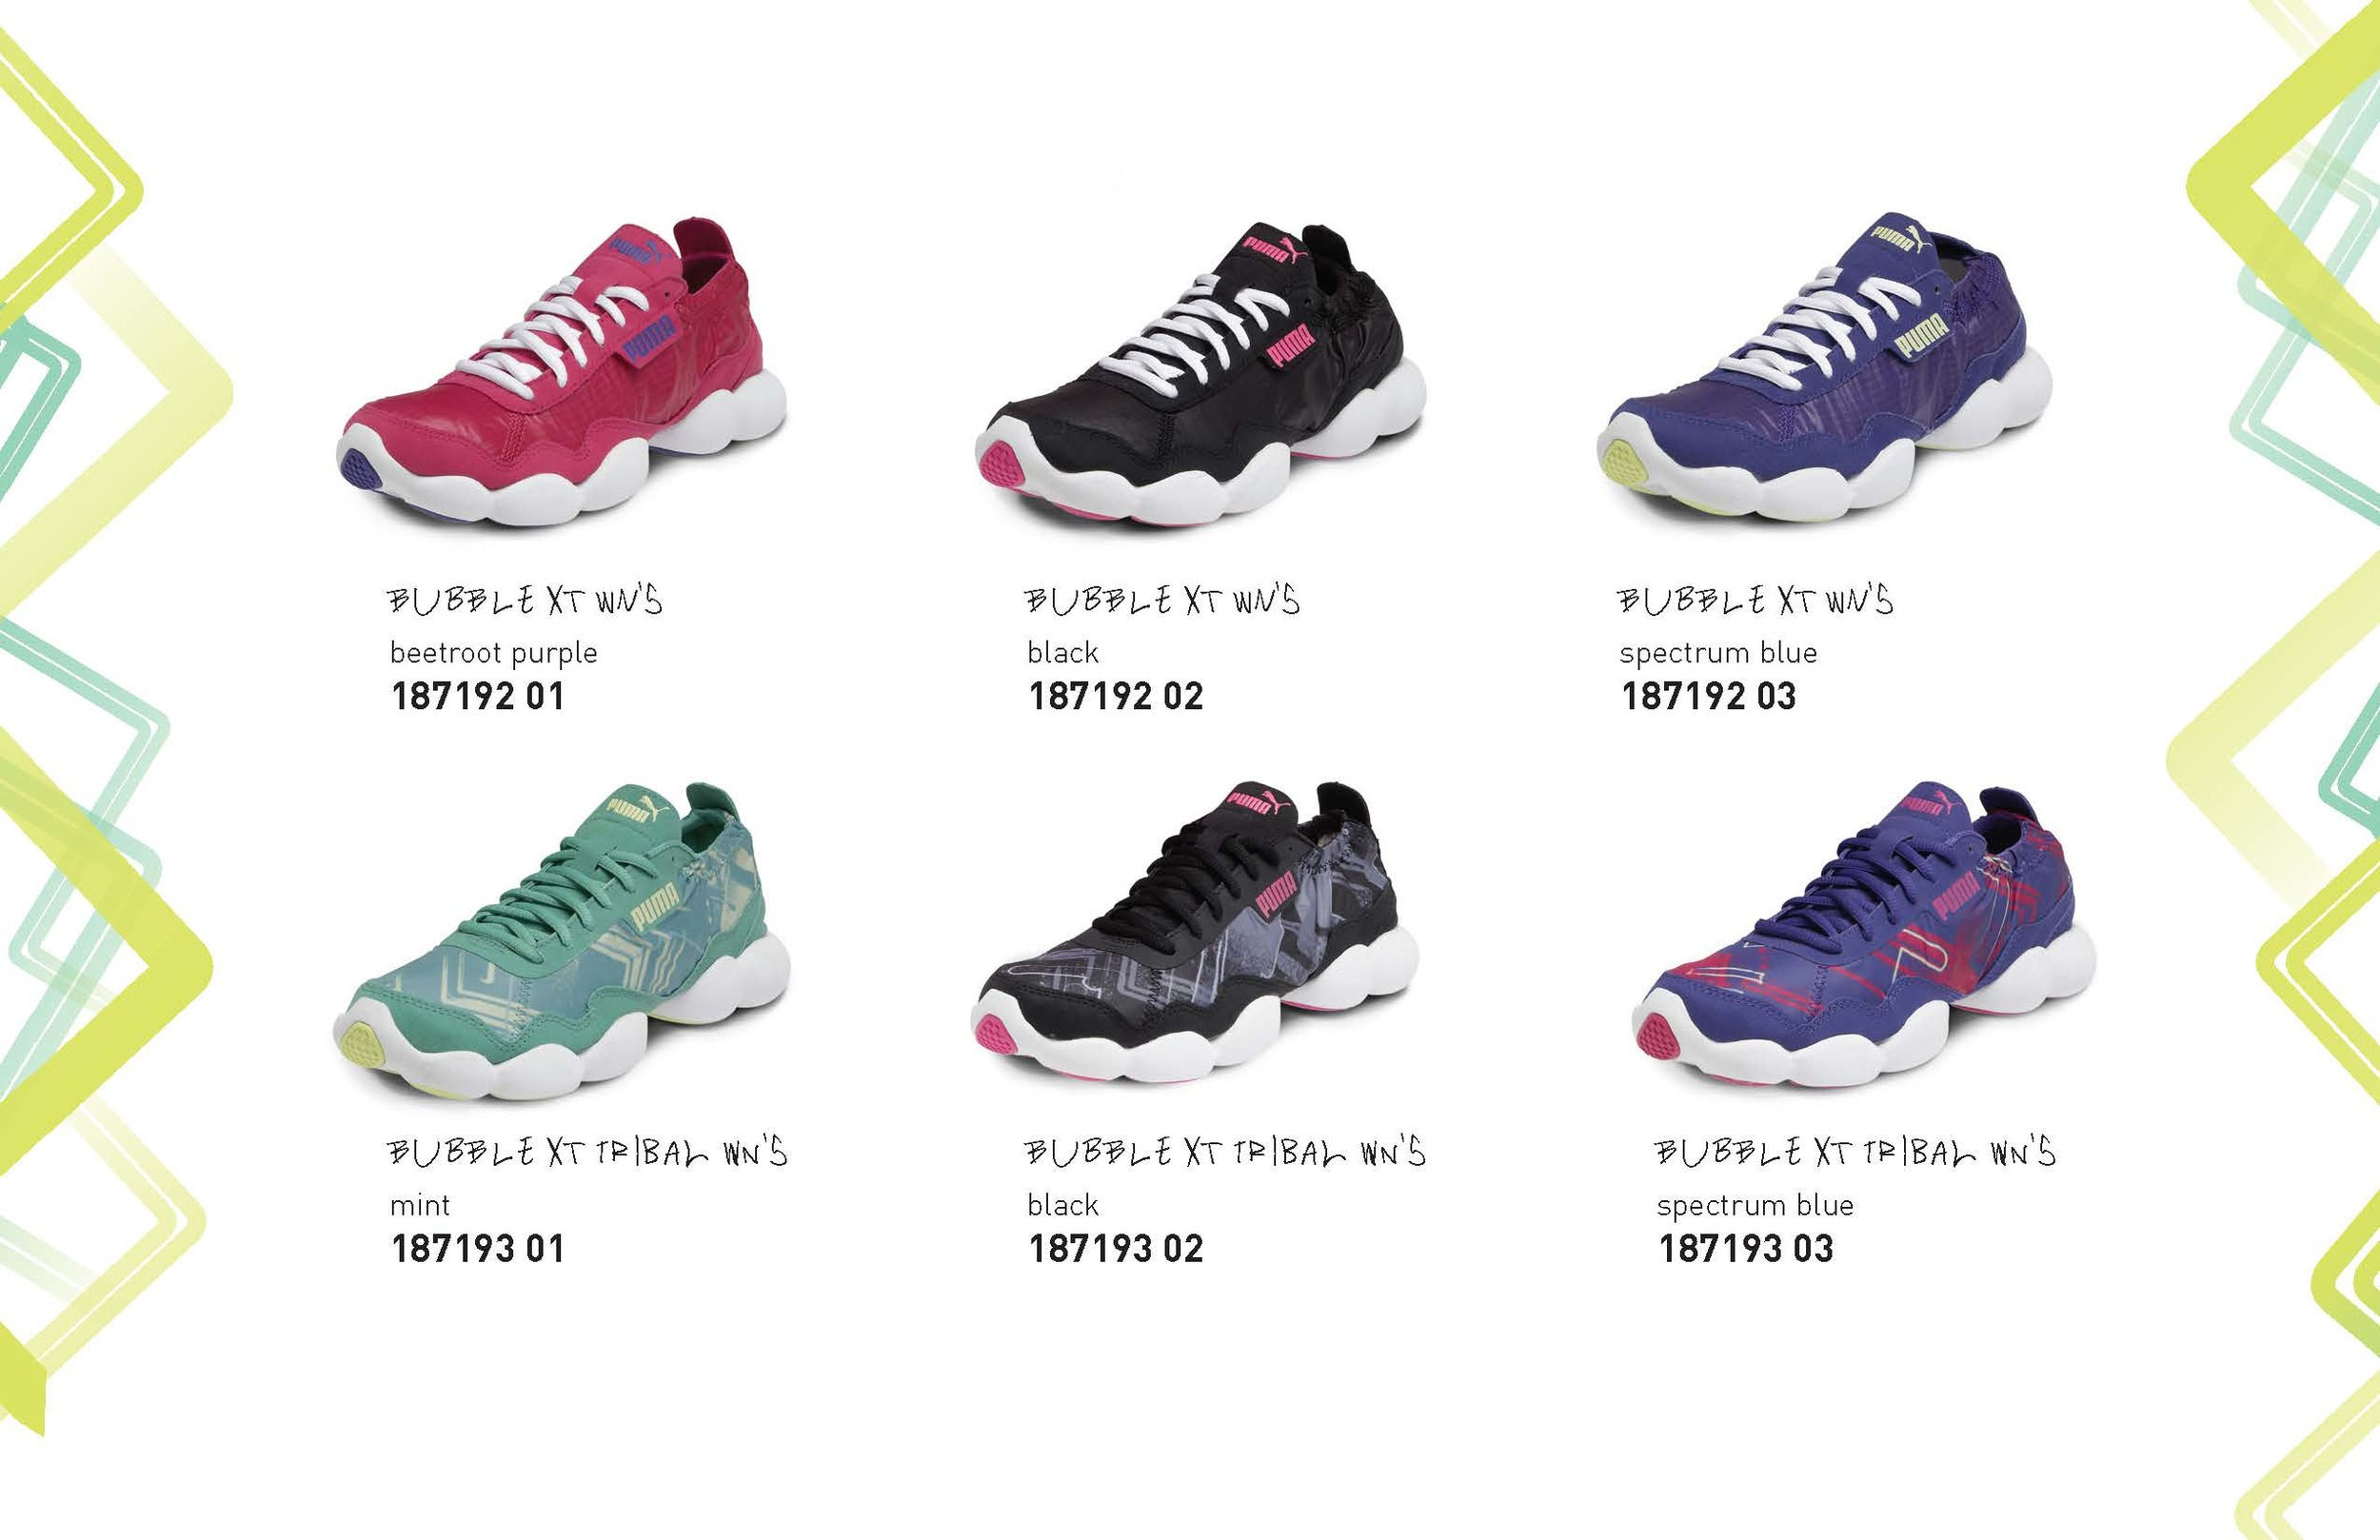 PUMA_booklet_7-30-13_HIRES_view_Page_13.jpg